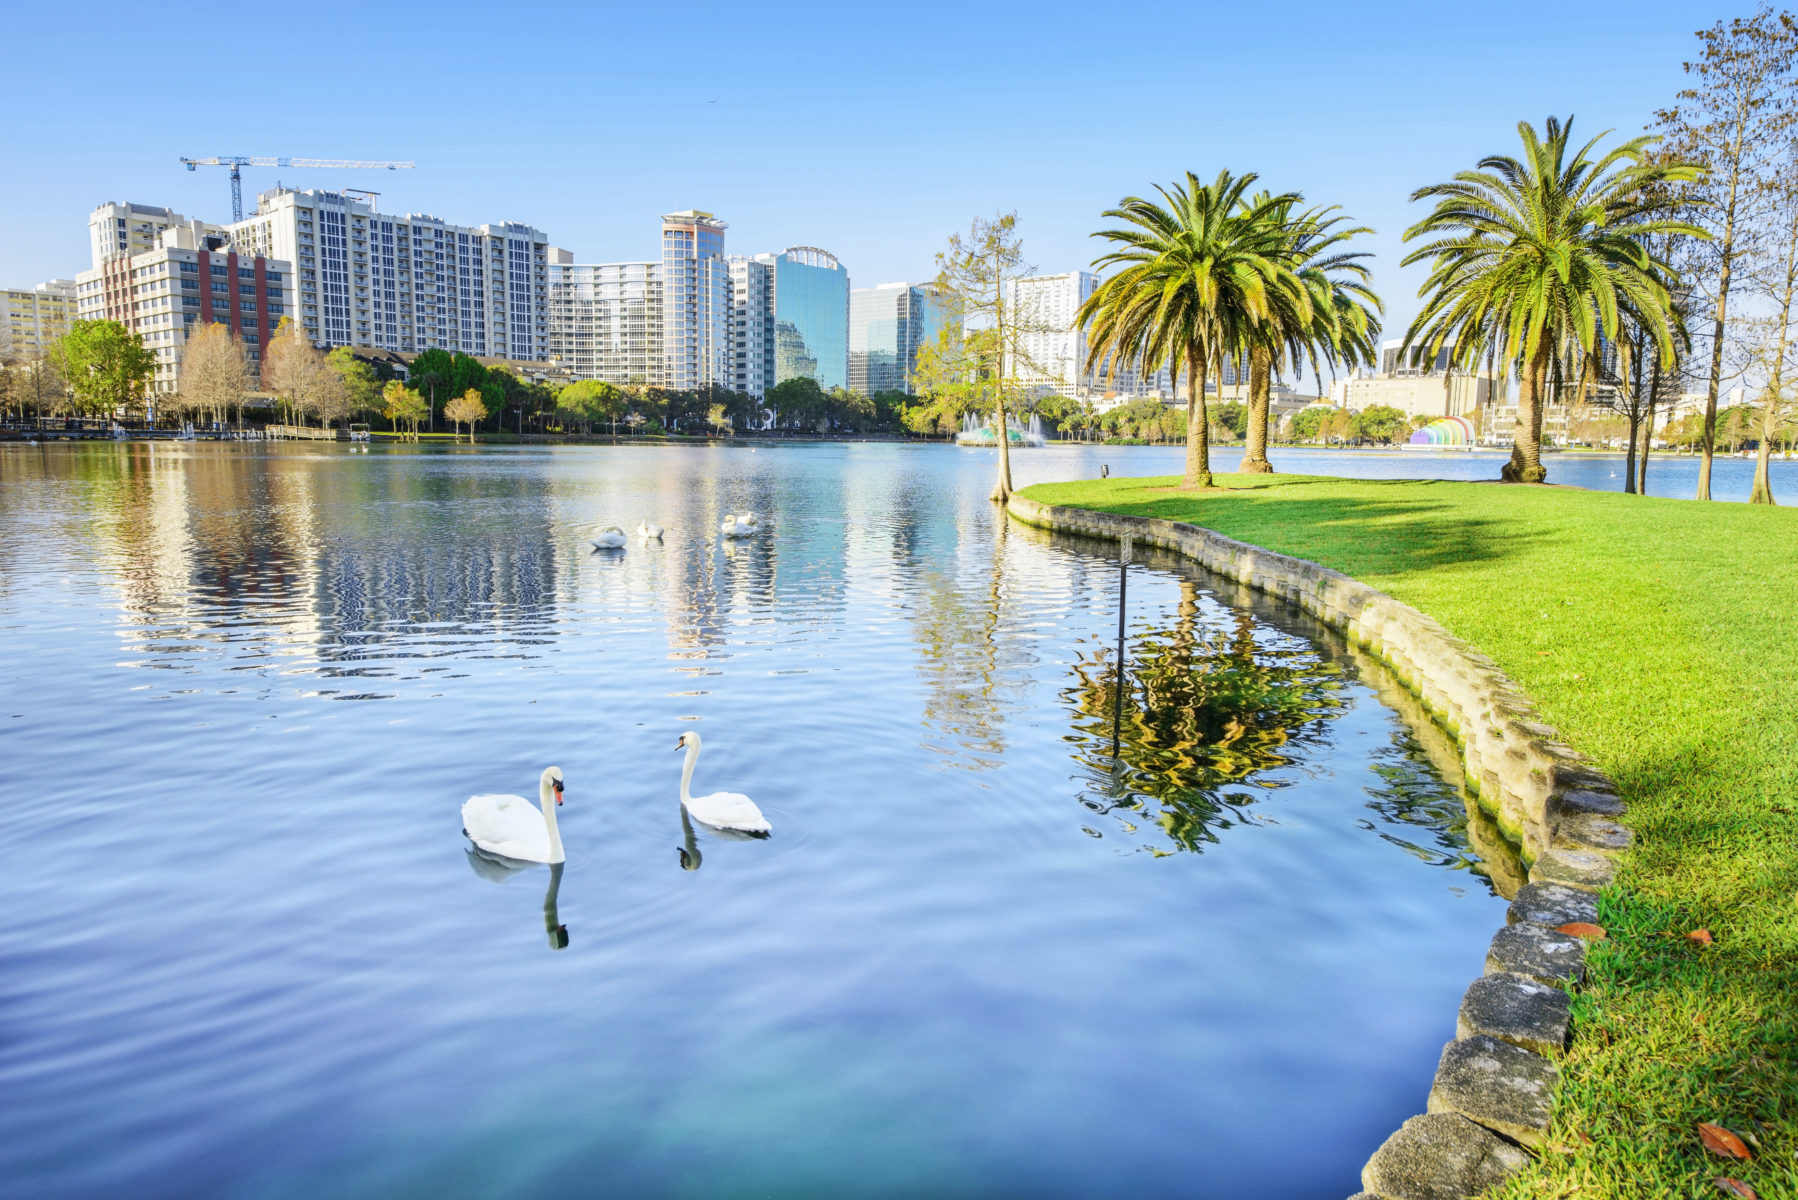 A beautiful day at Lake Eola Park in downtown Orlando